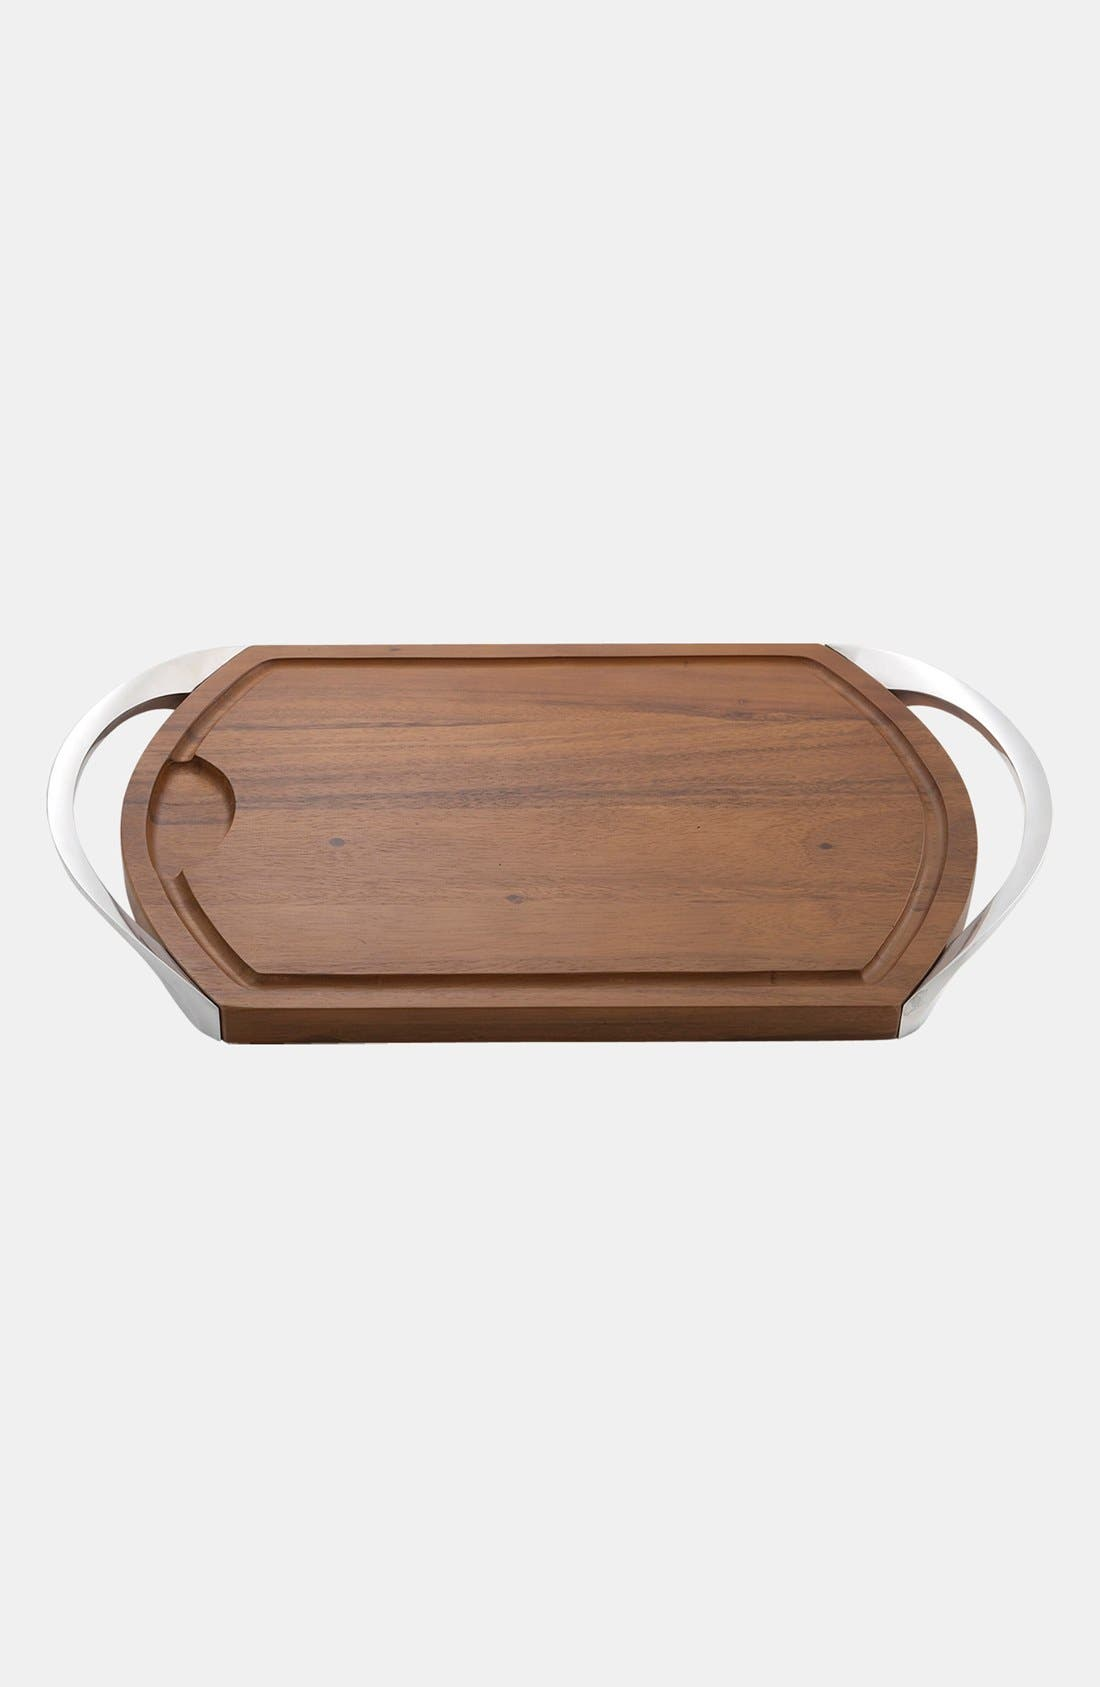 Carve & Serve Cutting Board,                         Main,                         color, 040